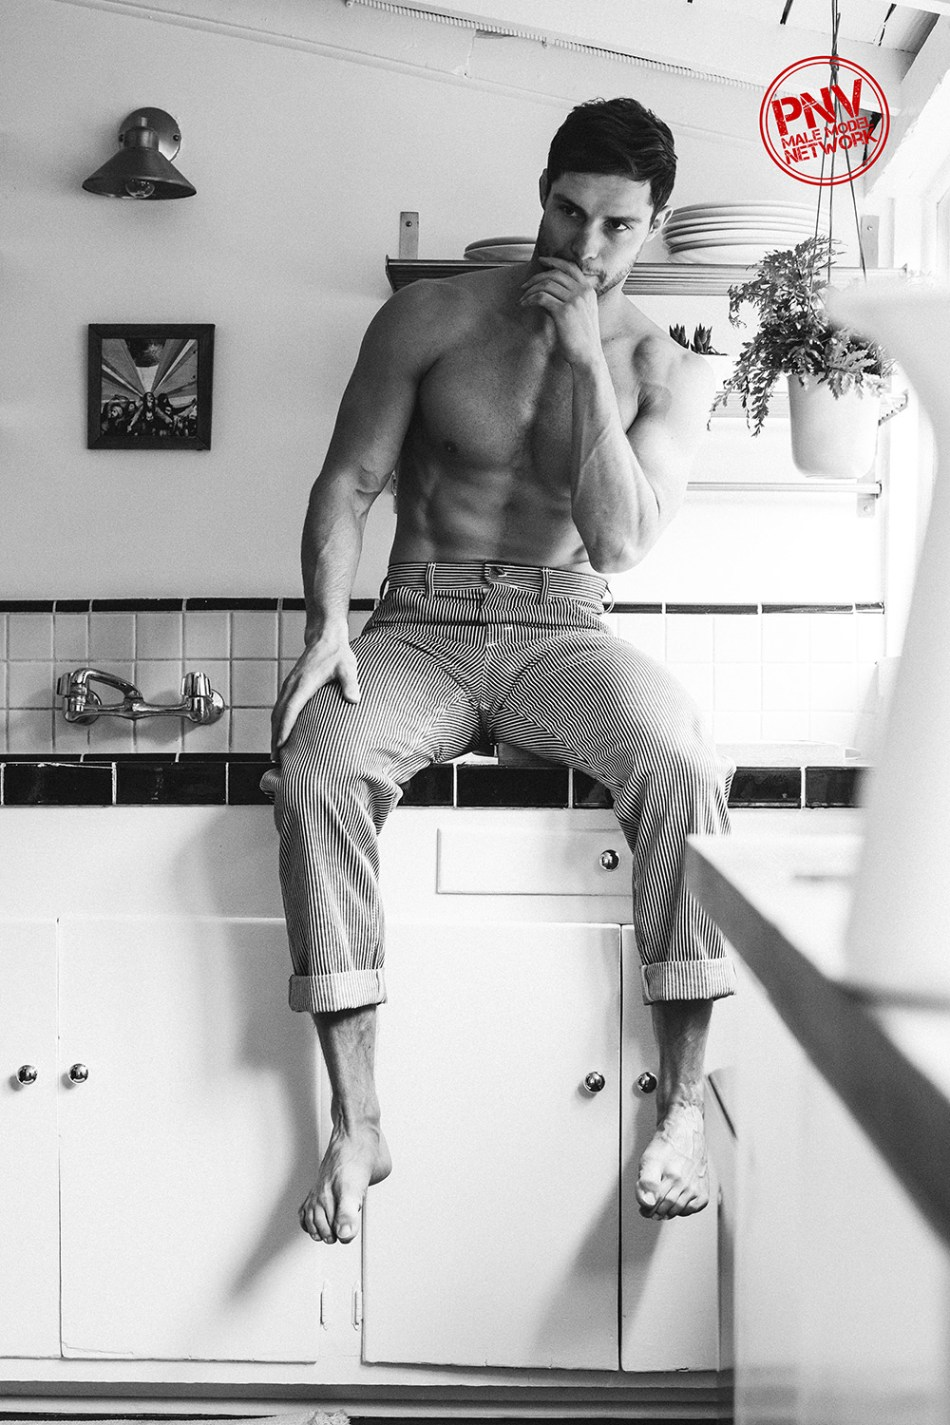 Hot 'n'fit Justin Leonard - Images by Menelik Puryear - PnV Network